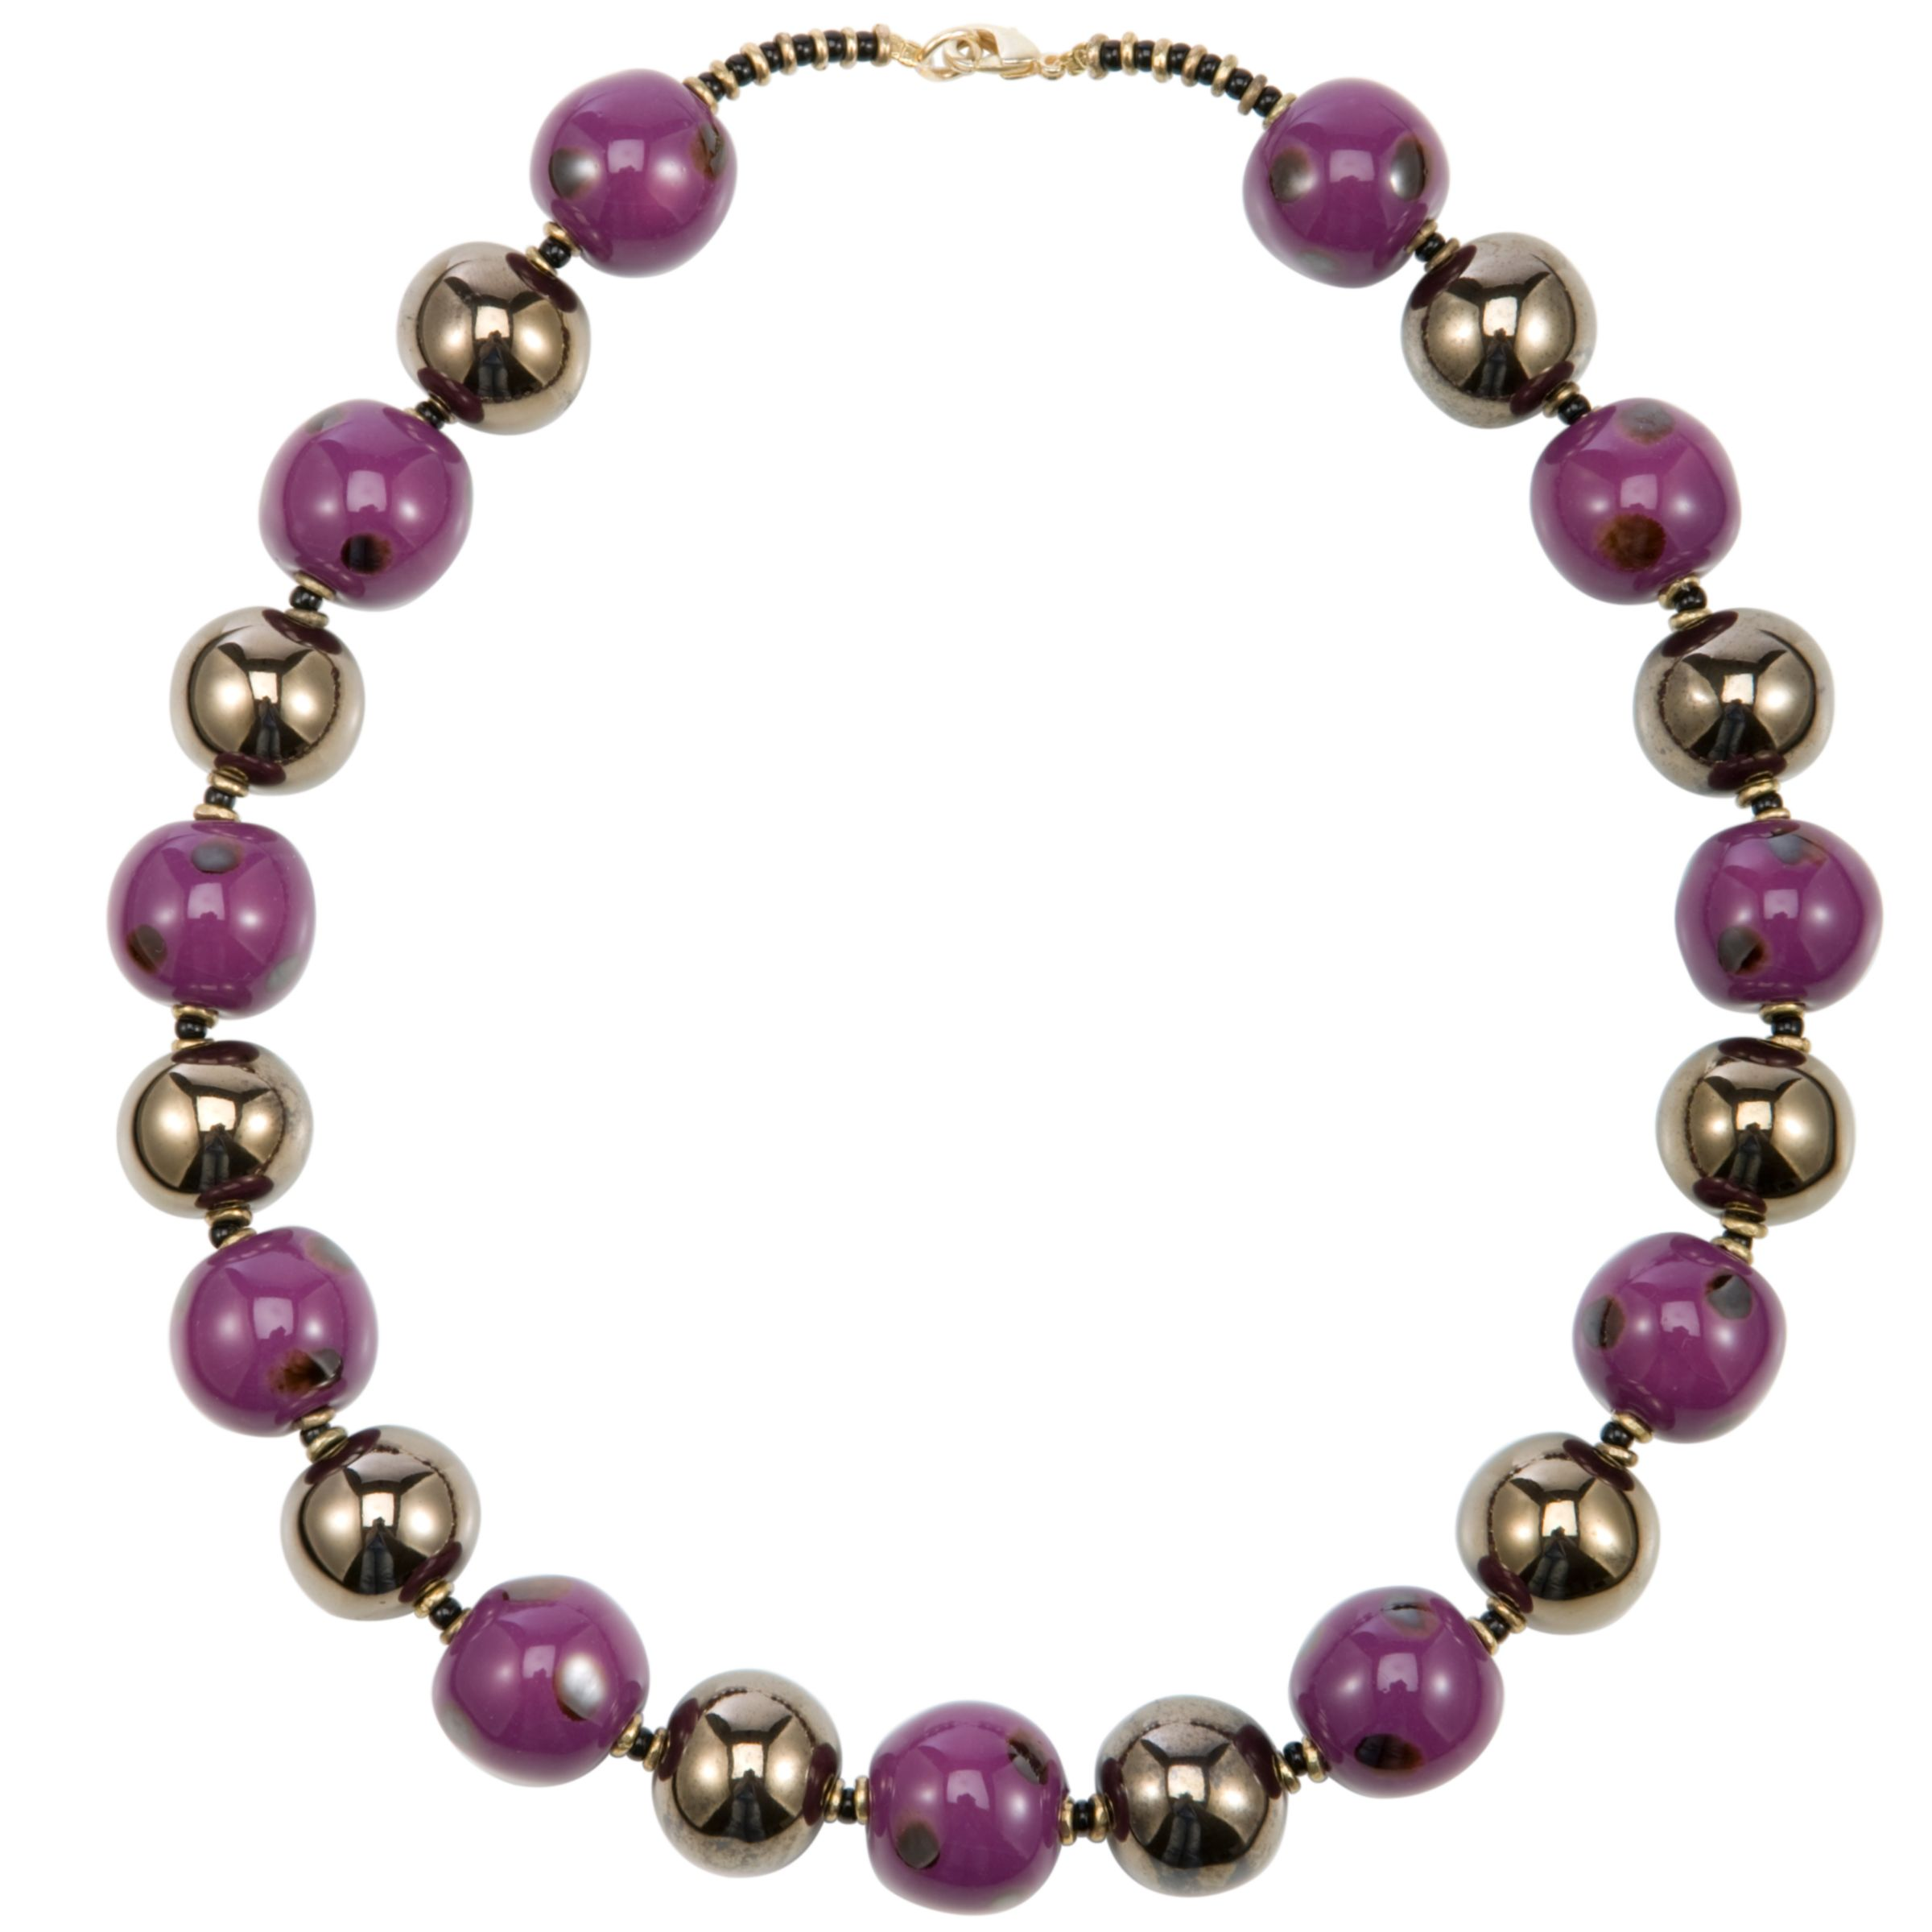 Kazuri Ting Ting Ceramic Bead Necklace, Gold/Violet